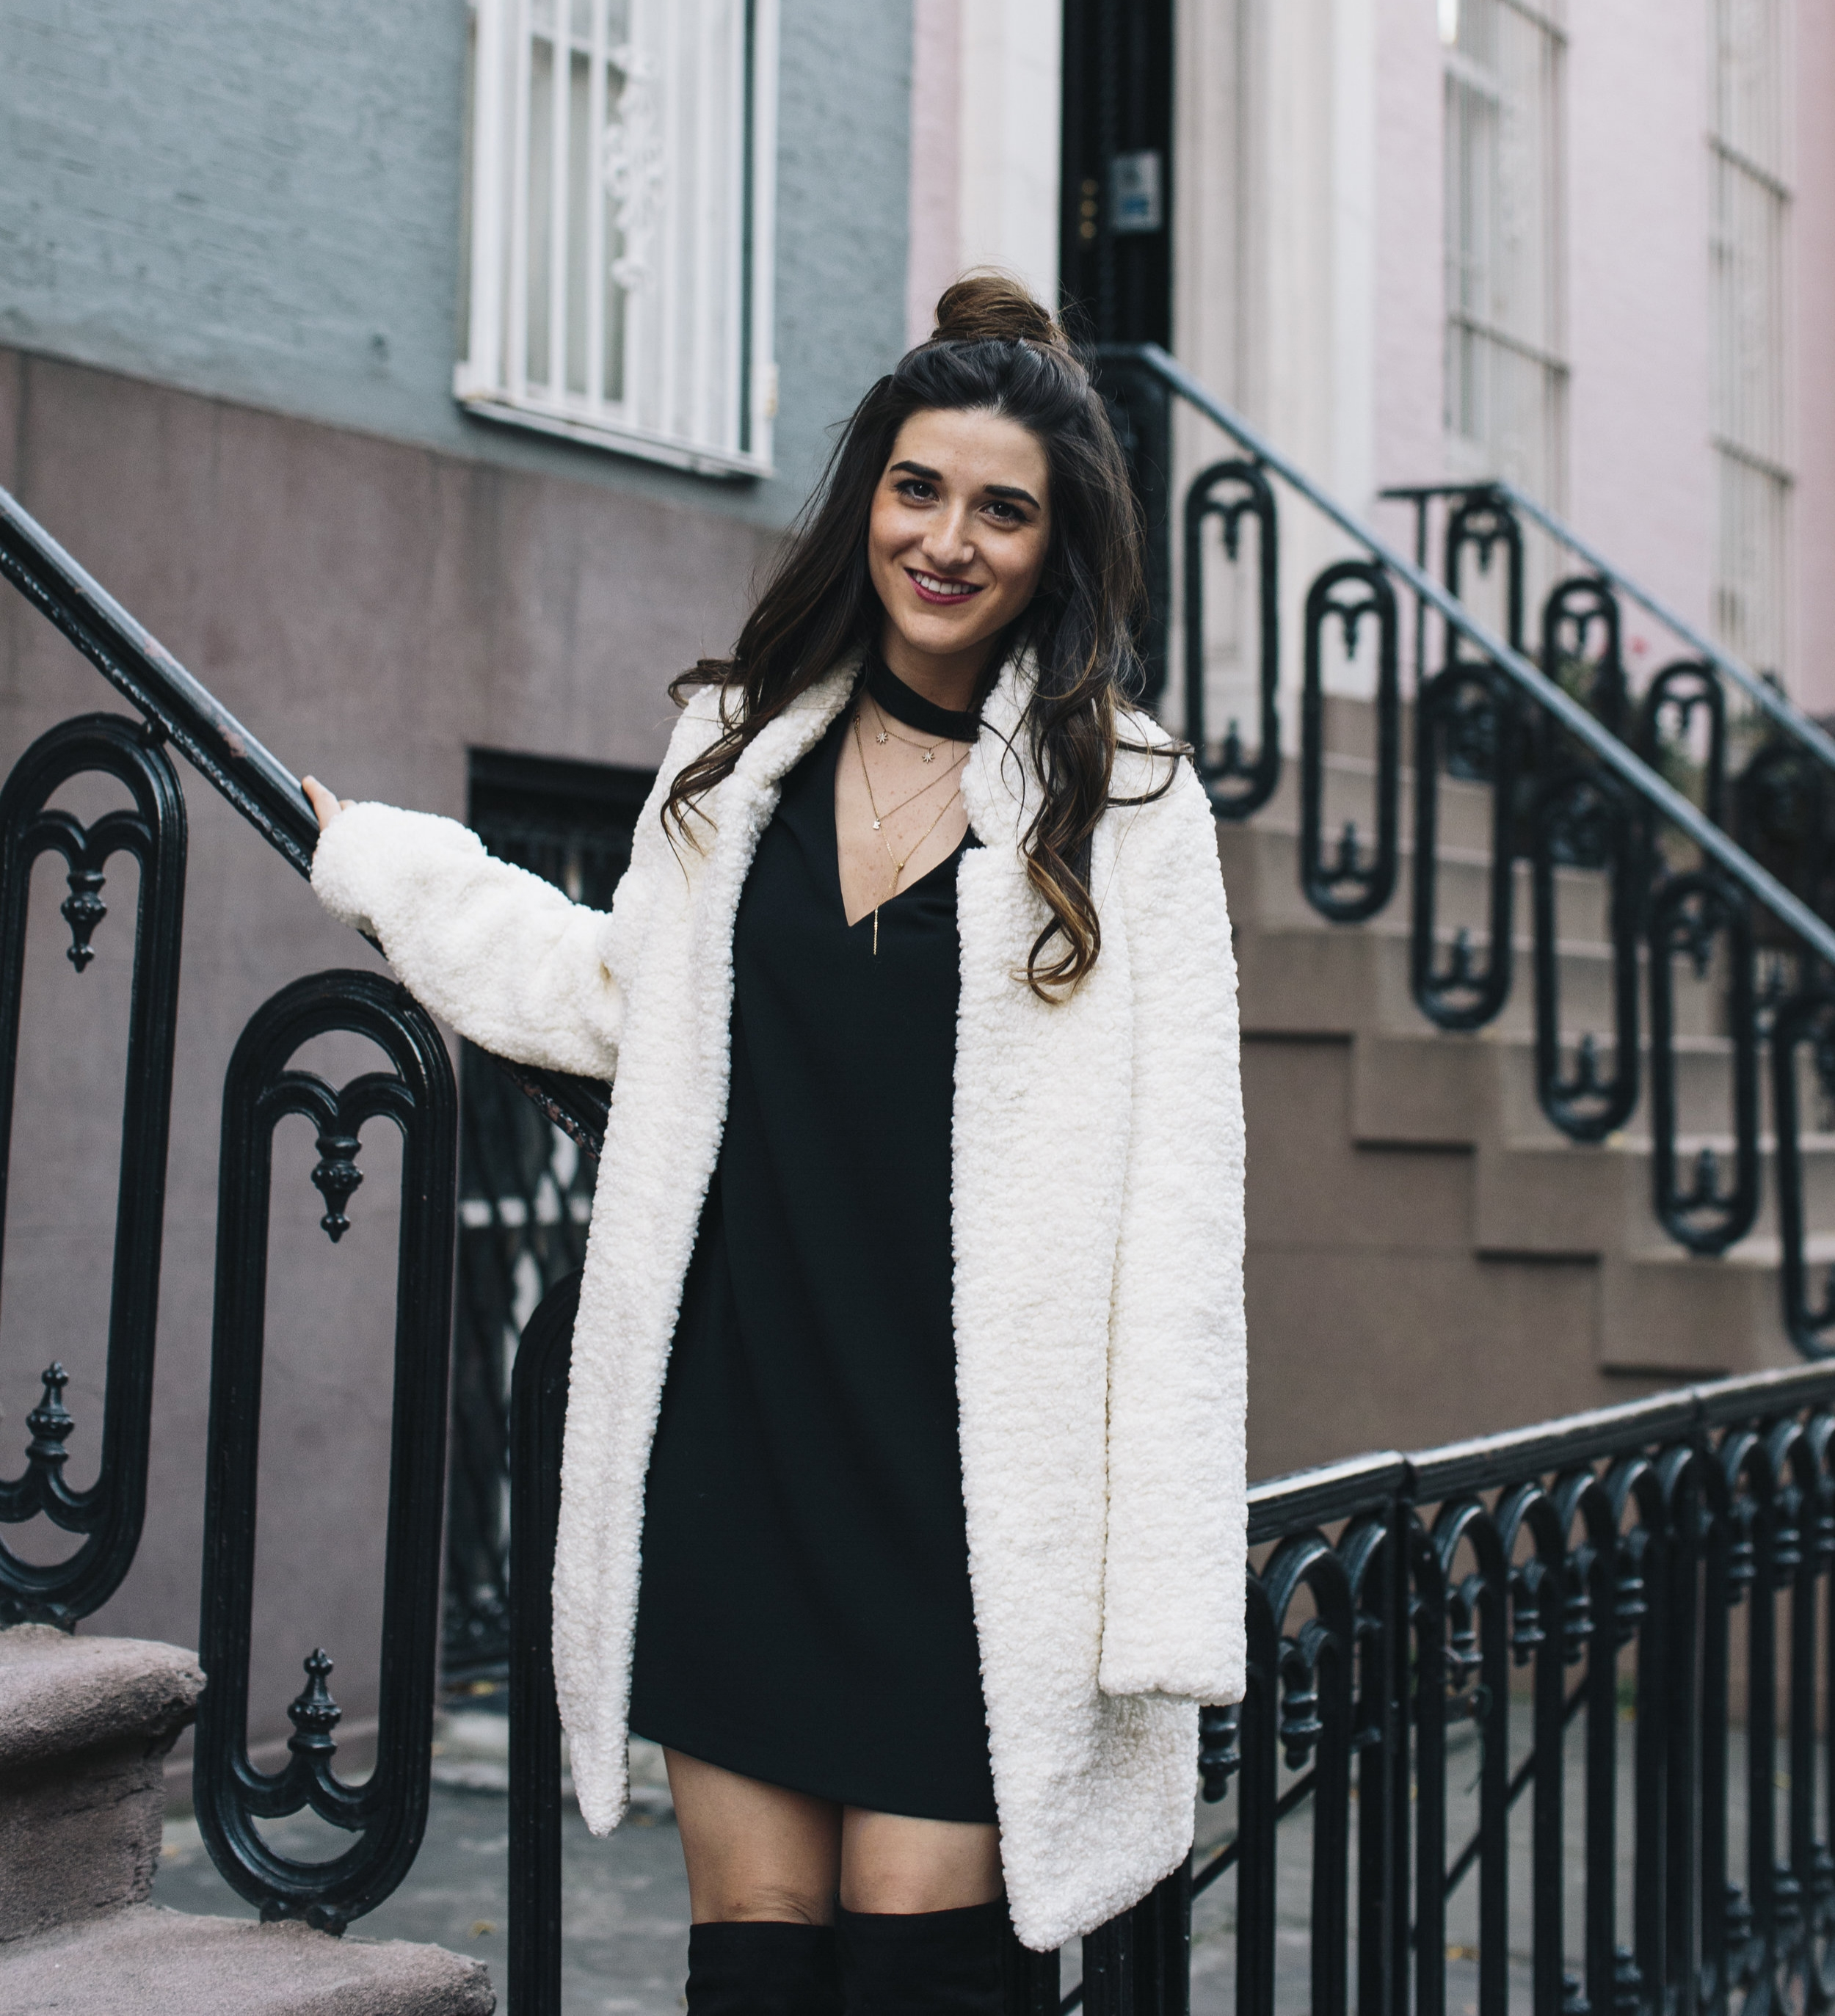 Teddy Bear Coat + OTN Boots How To Avoid Blogger Depression Louboutins & Love Fashion Blog Esther Santer NYC Street Style Blogger Outfit OOTD Trendy Ivanka Trump Nordstrom Bloomingdales Black Dress Zara Pretty Online Shopping Wear Shoes Bun Women Girl.jpg